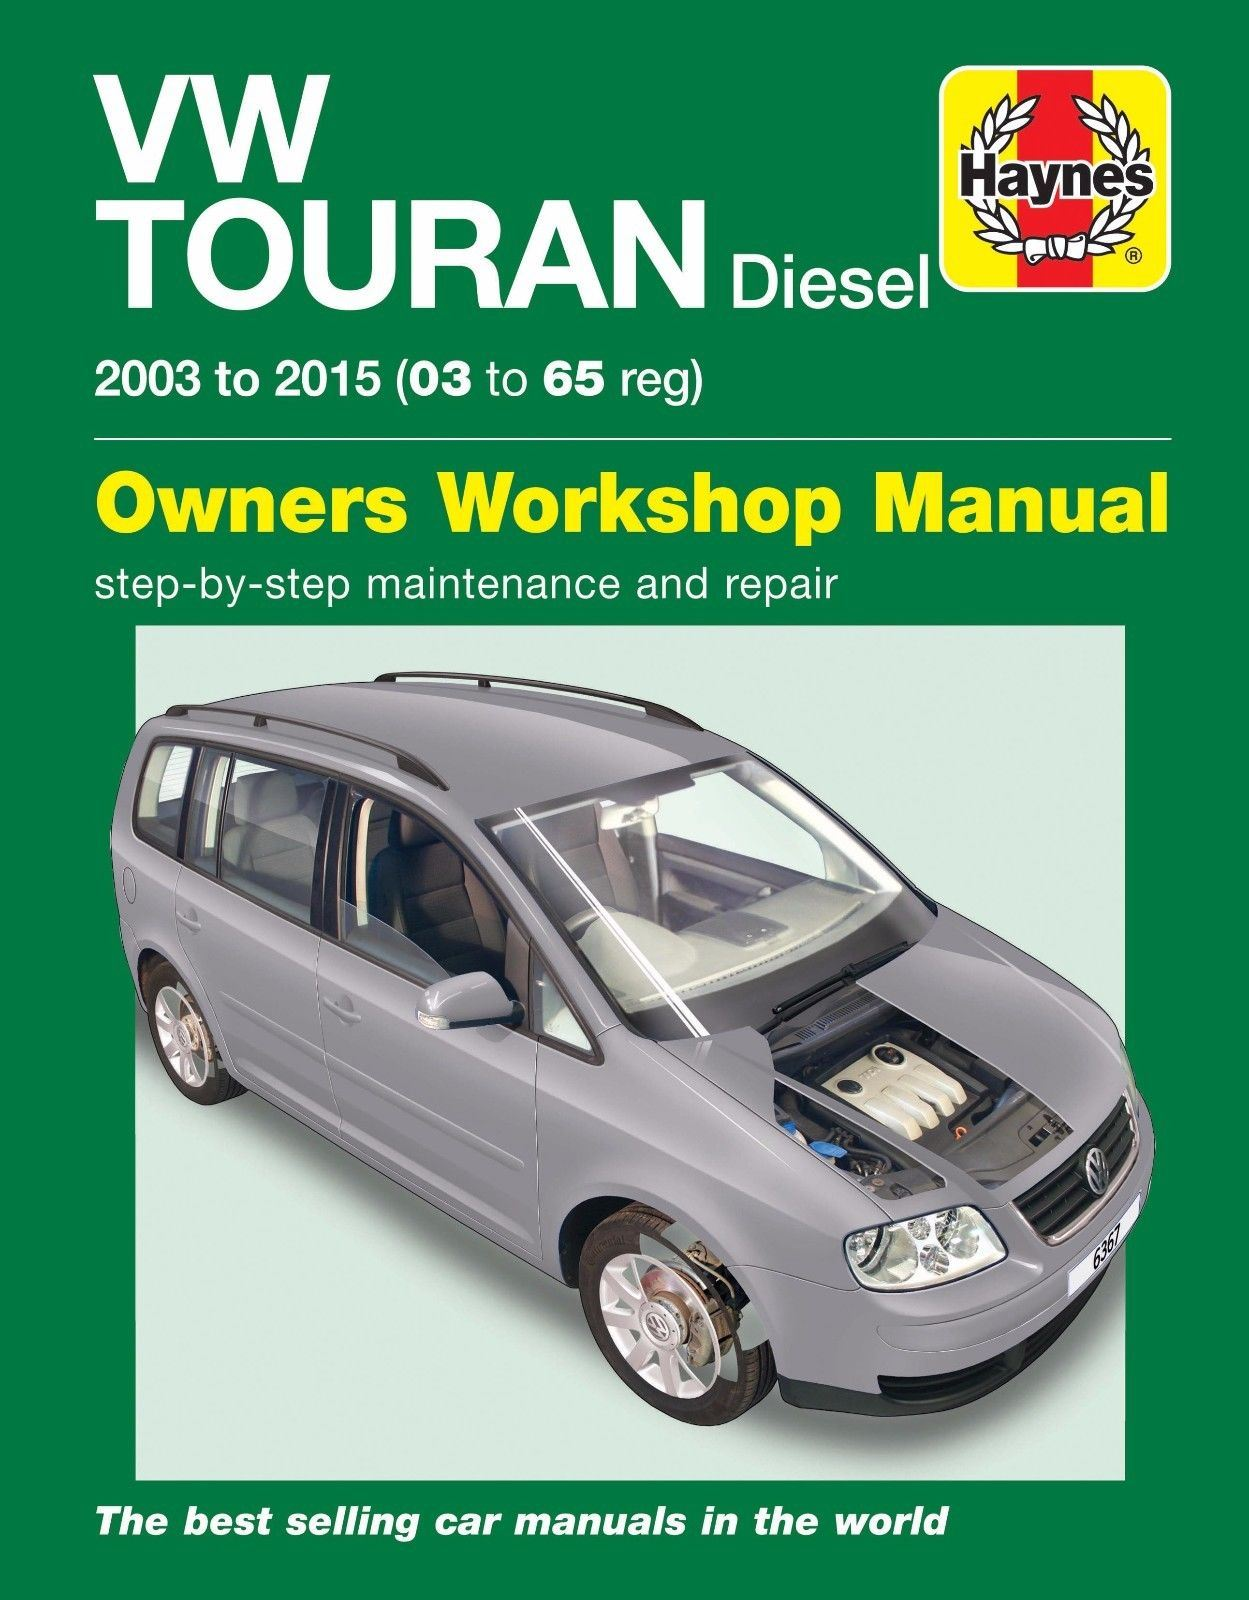 Haynes Manual Vw Touran Diesel 03